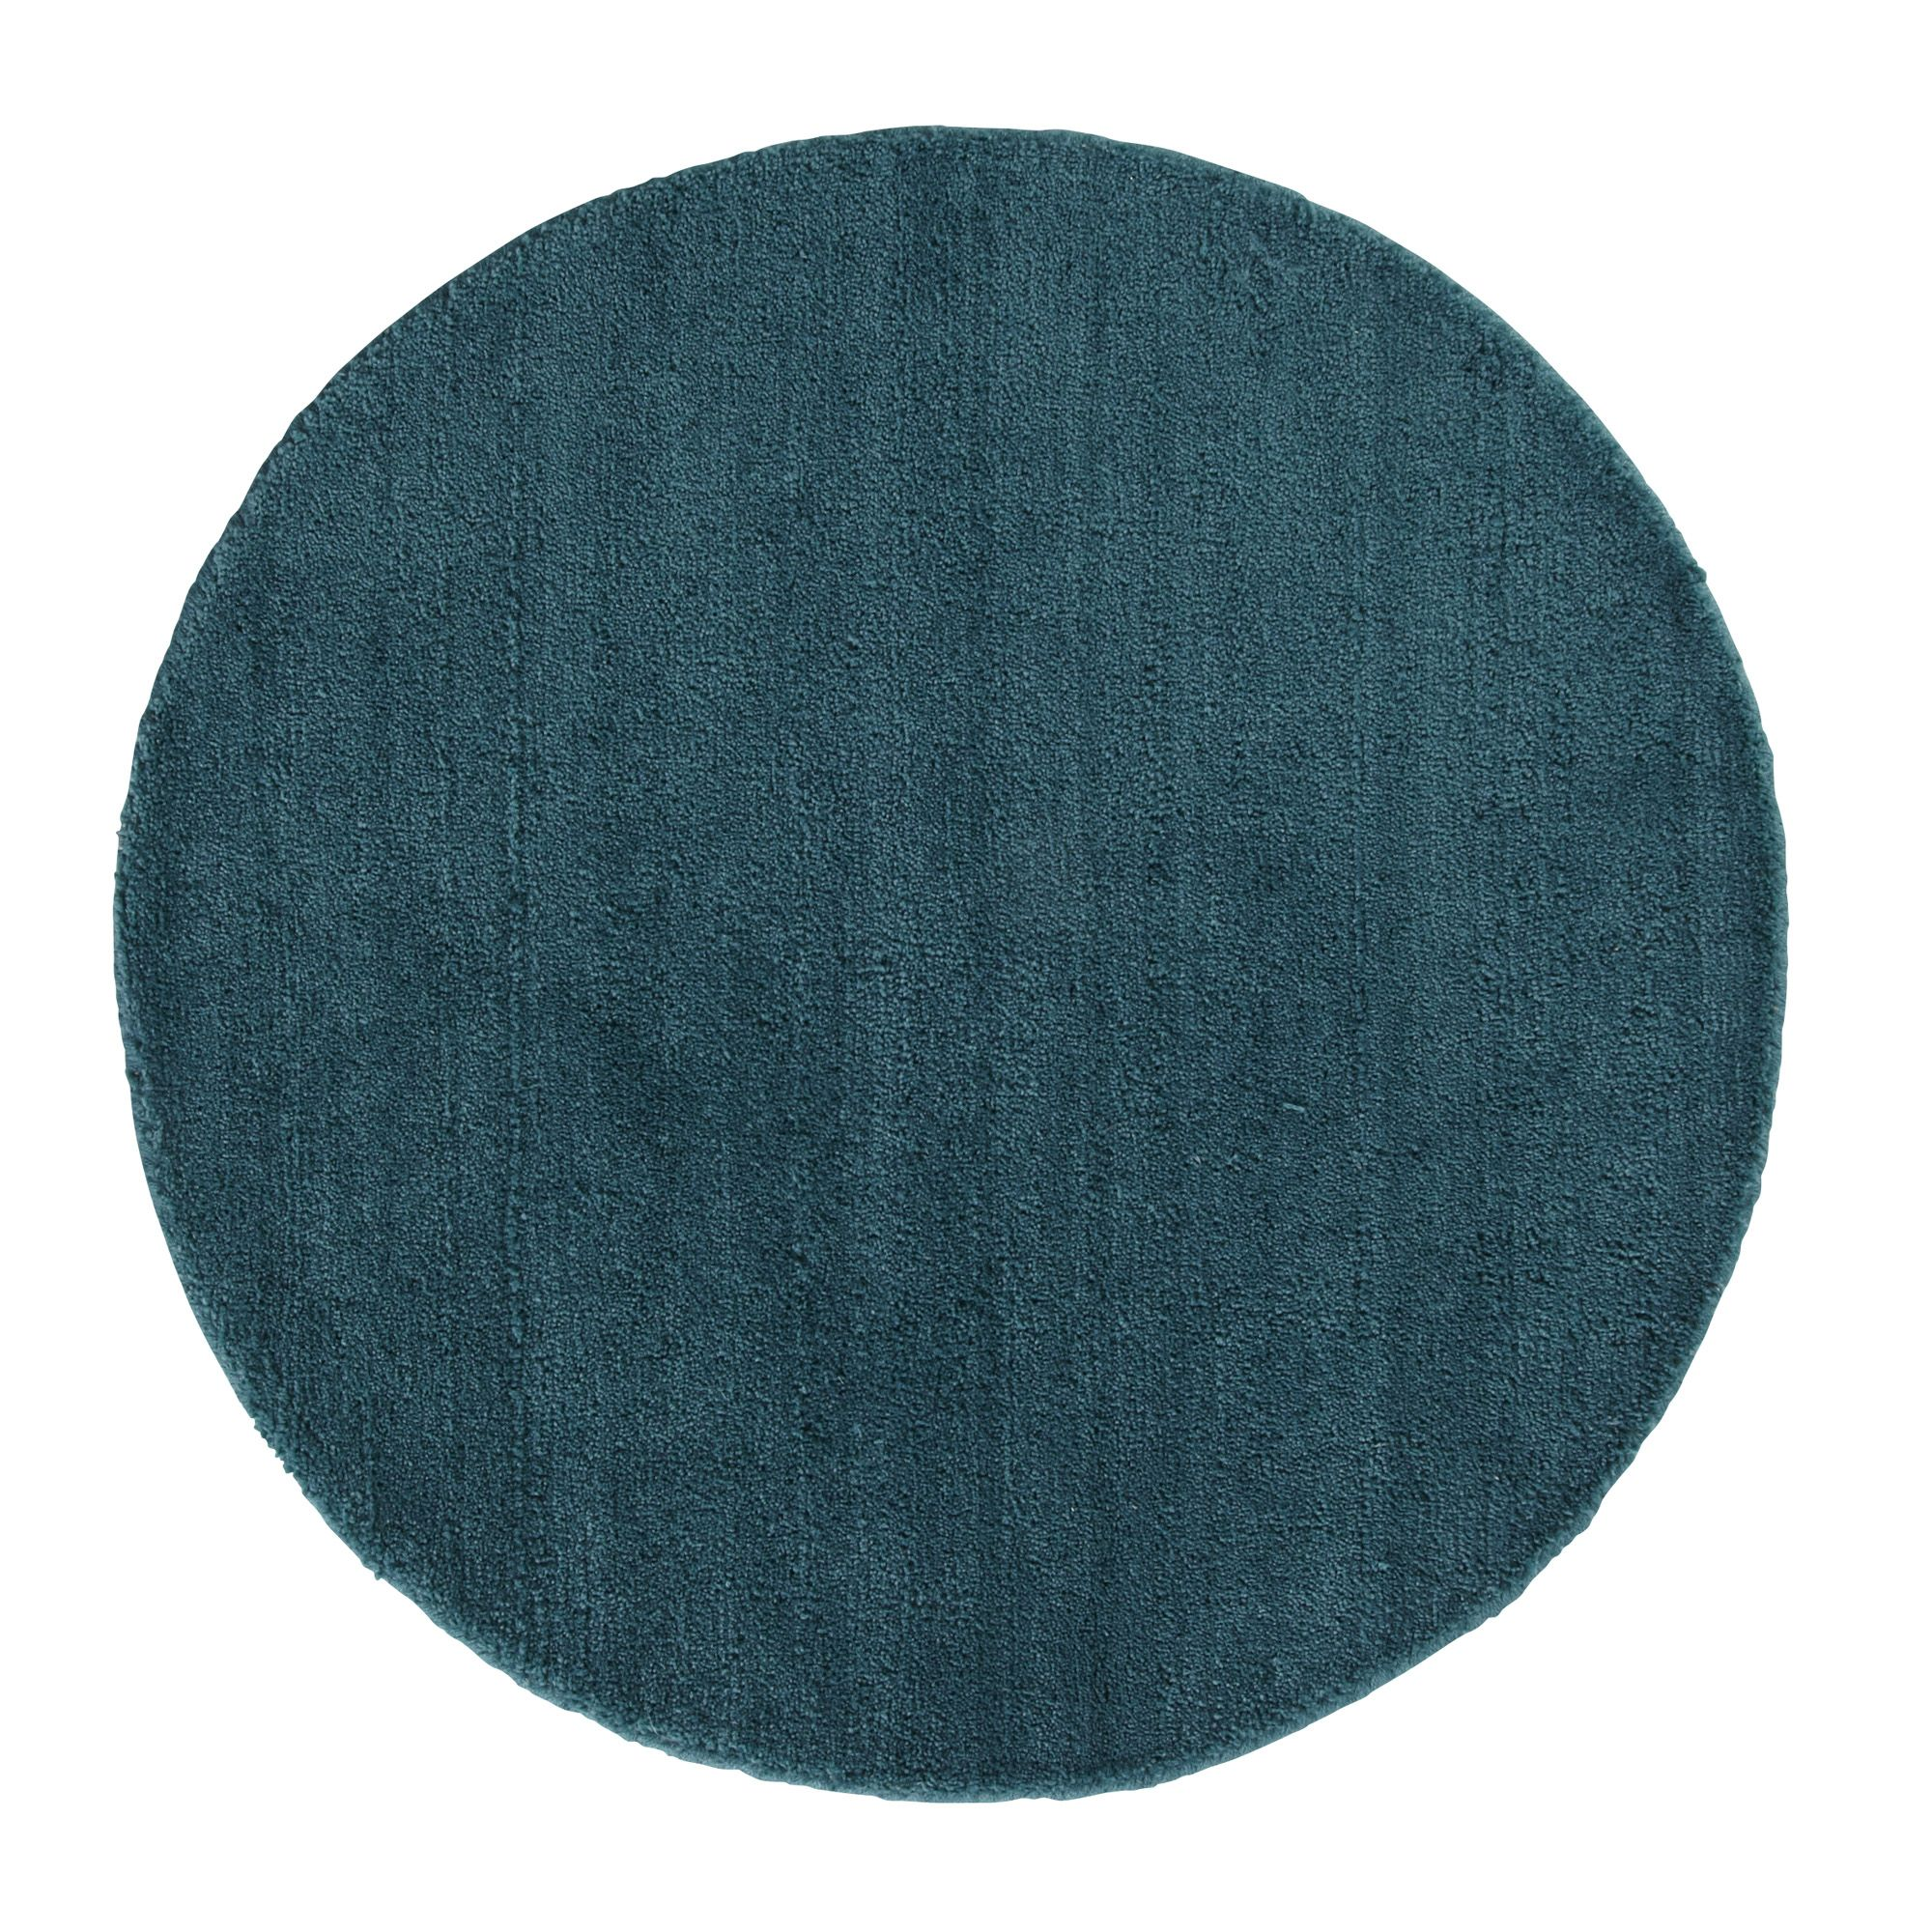 Colours Silas Teal Rug L 0 8m W 0 8m Departments Diy